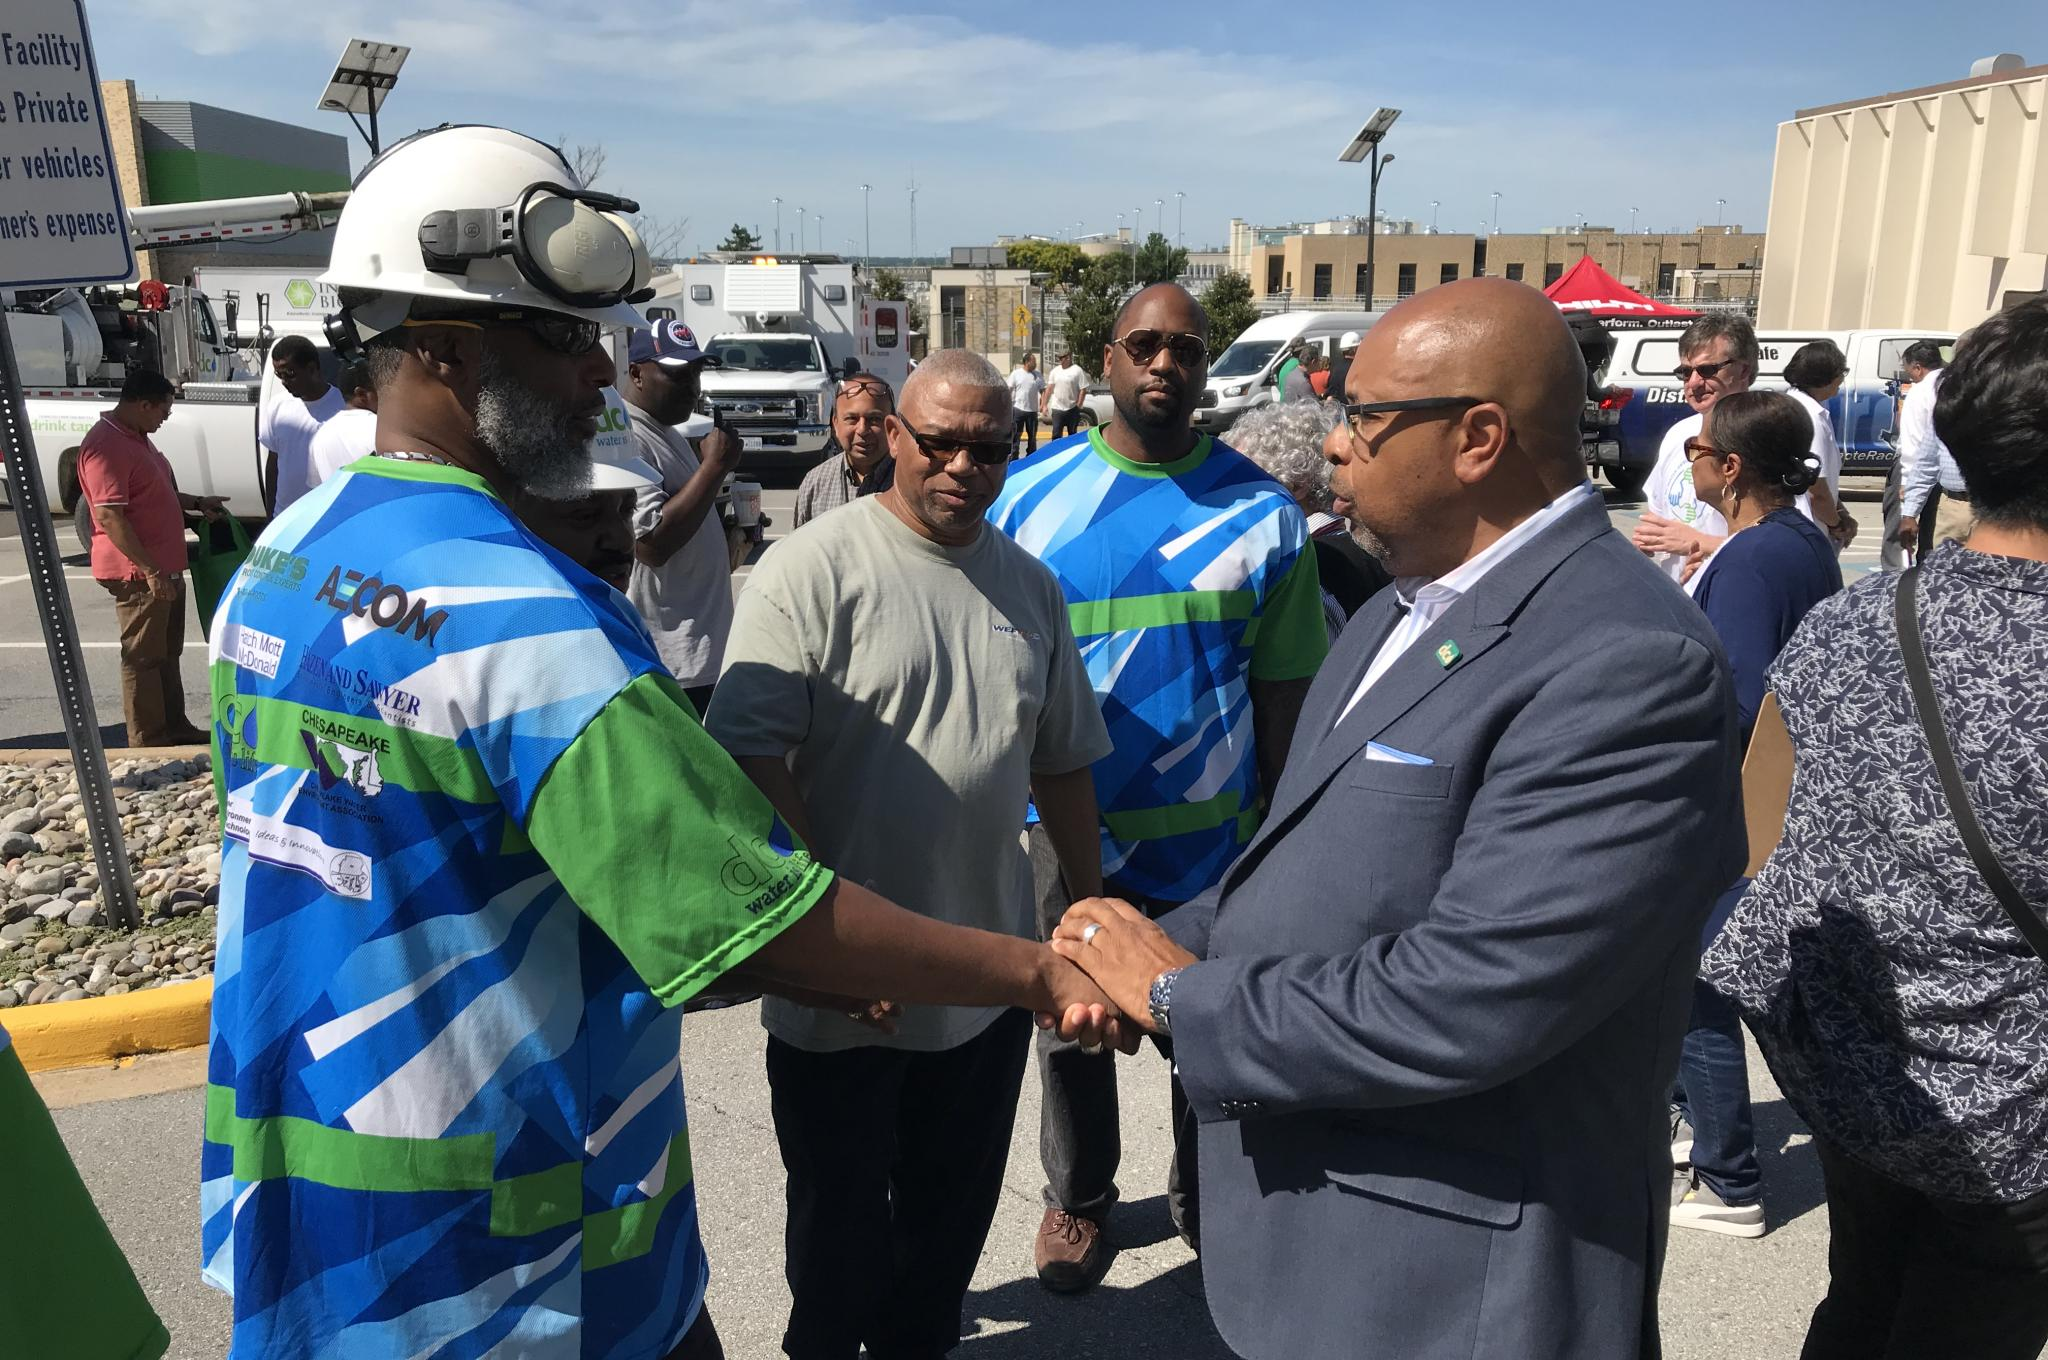 David Gadis meets DC Water employees